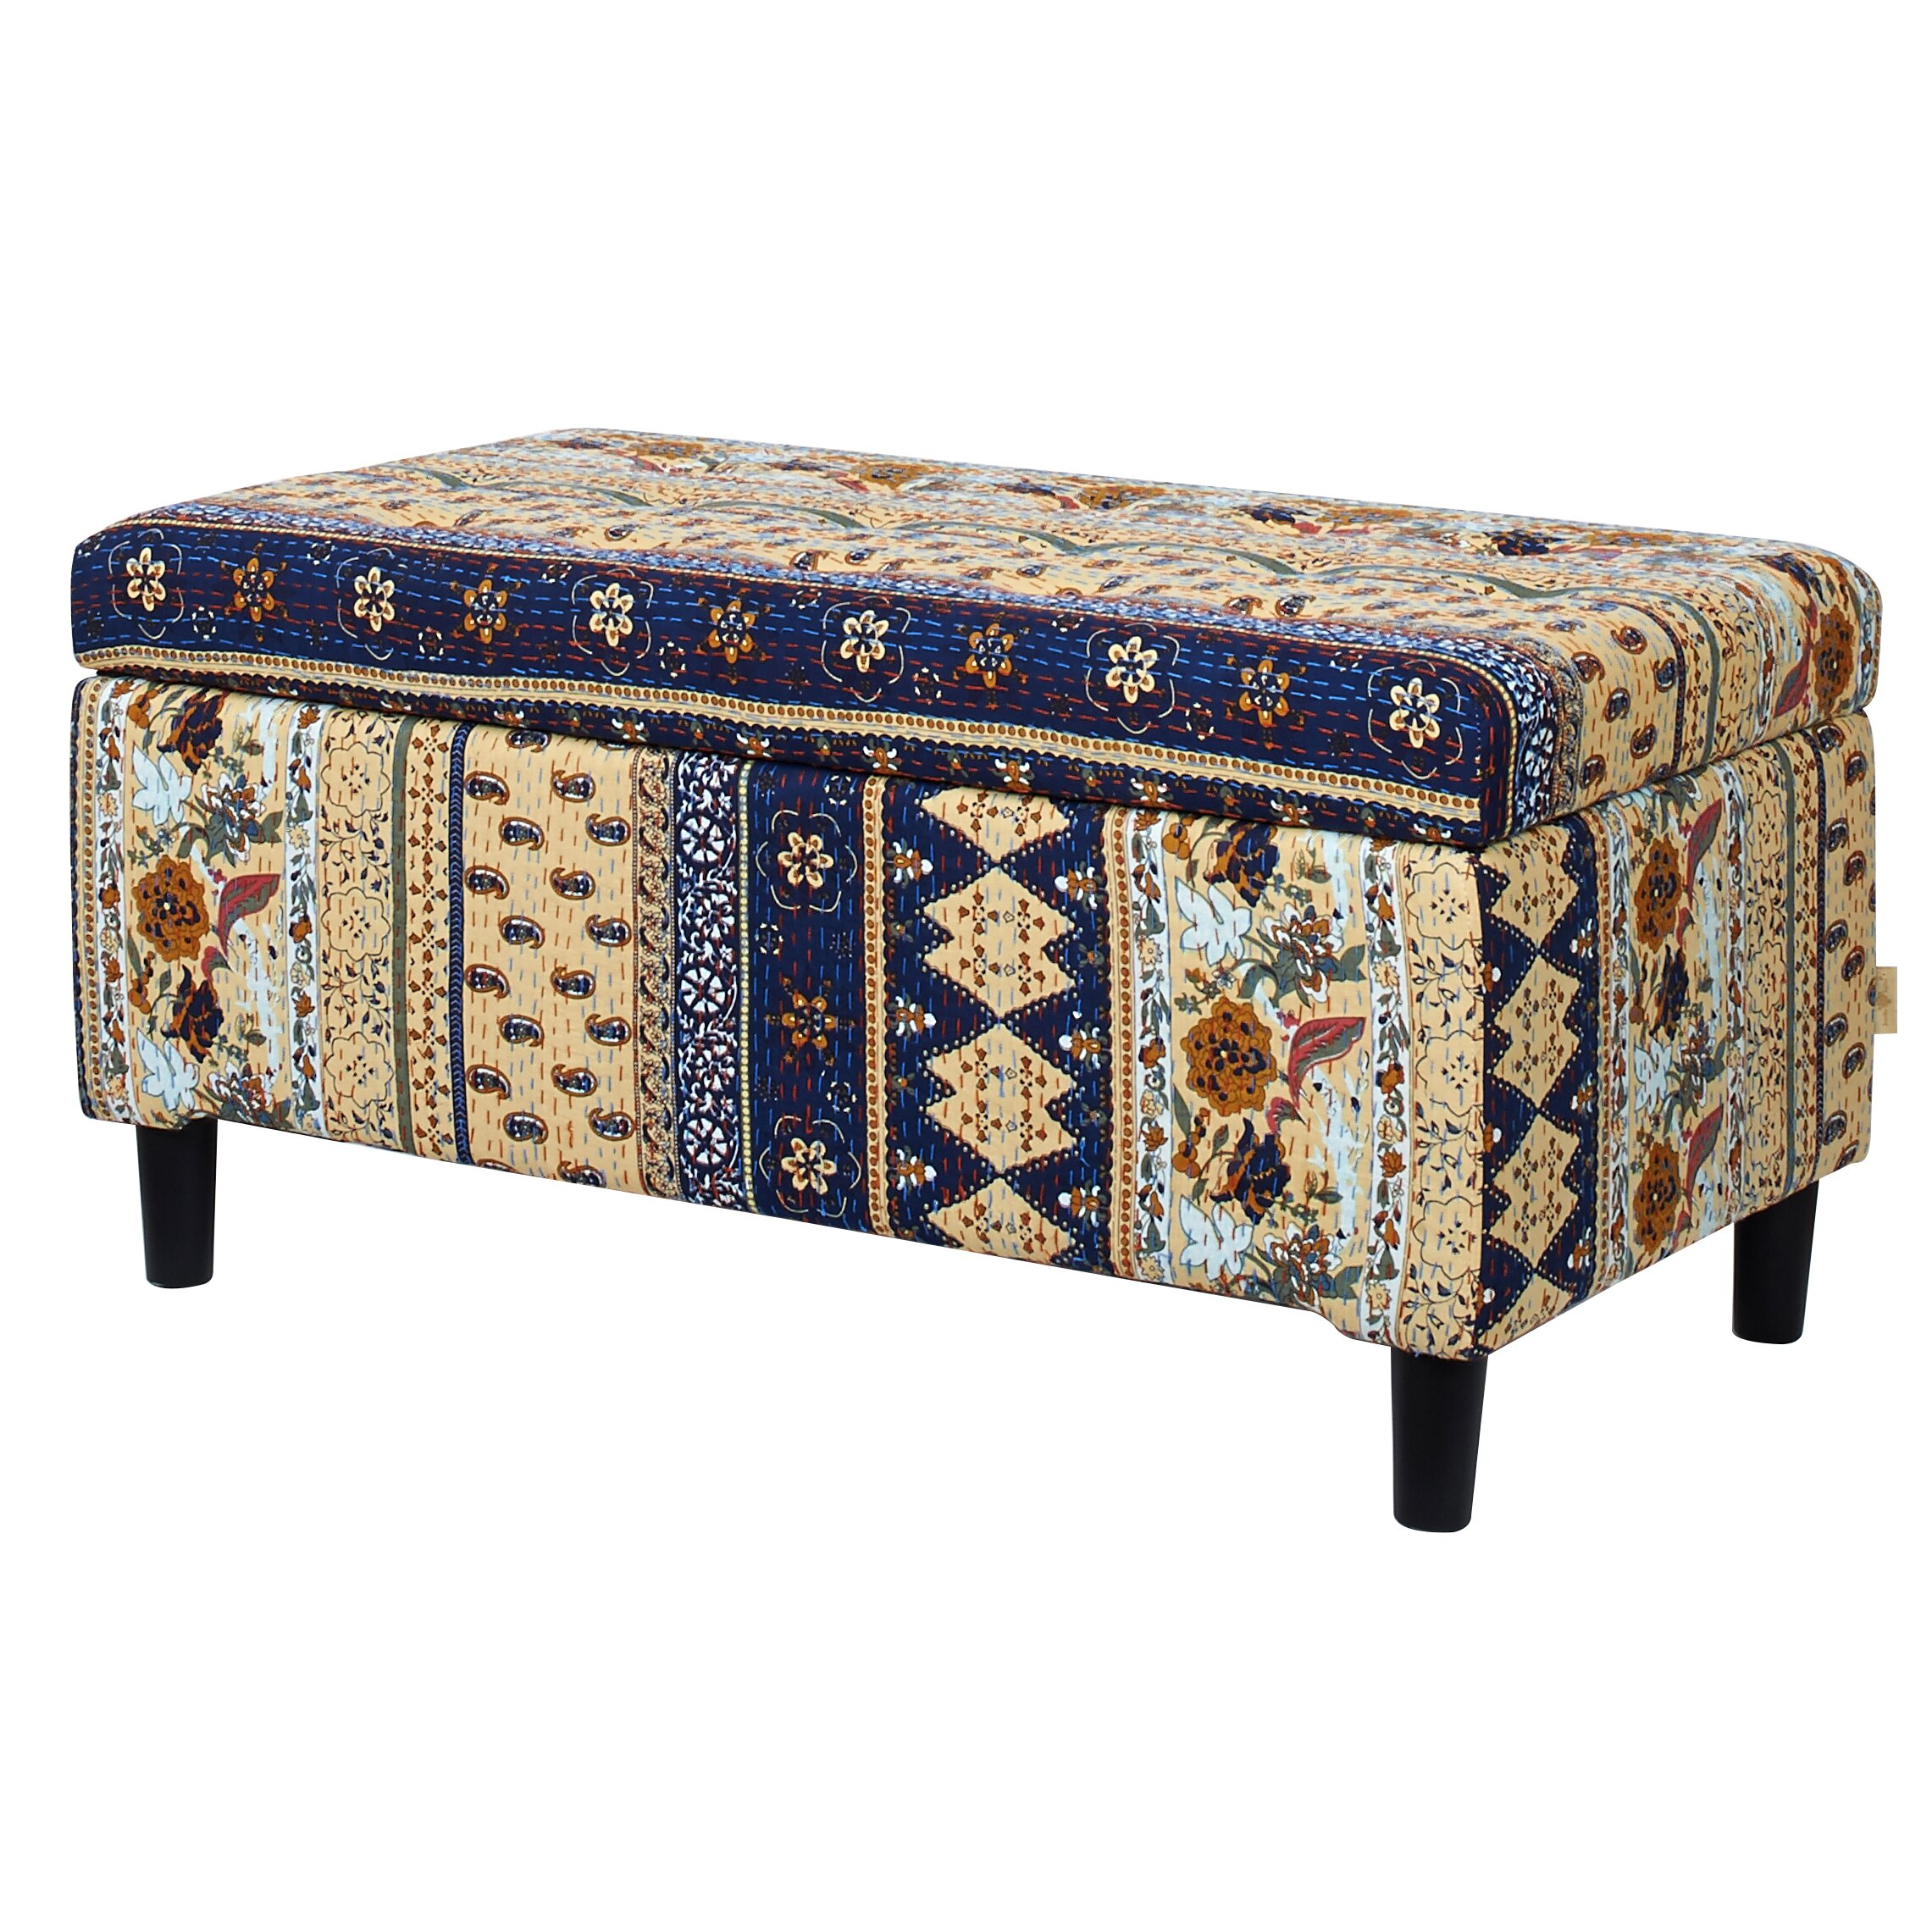 Upholstered Foyer Bench : Bungalow rose astral upholstered storage entryway bench